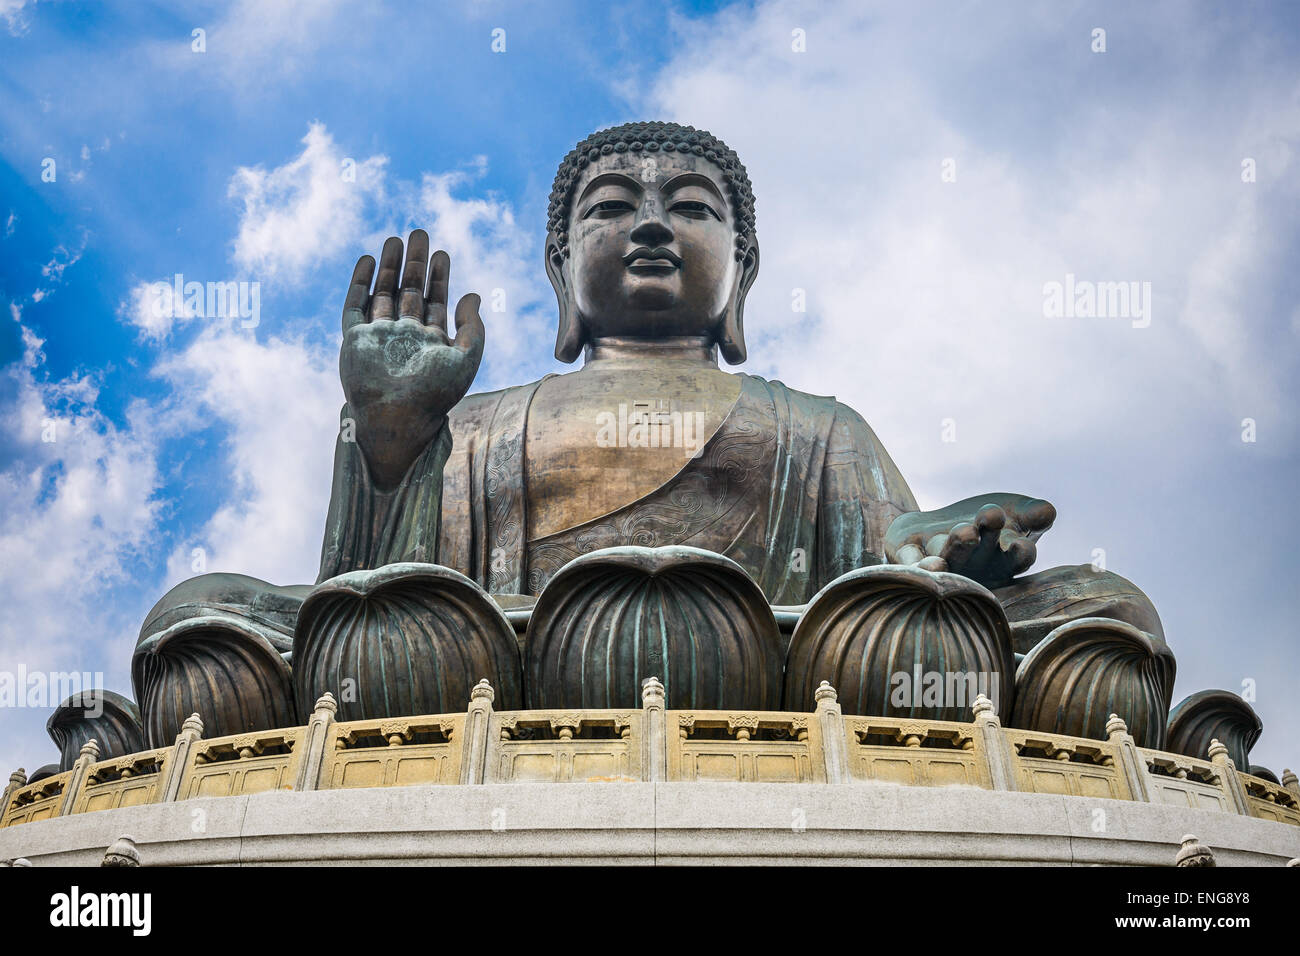 Hong Kong, China at the Tian Tan Buddha. - Stock Image